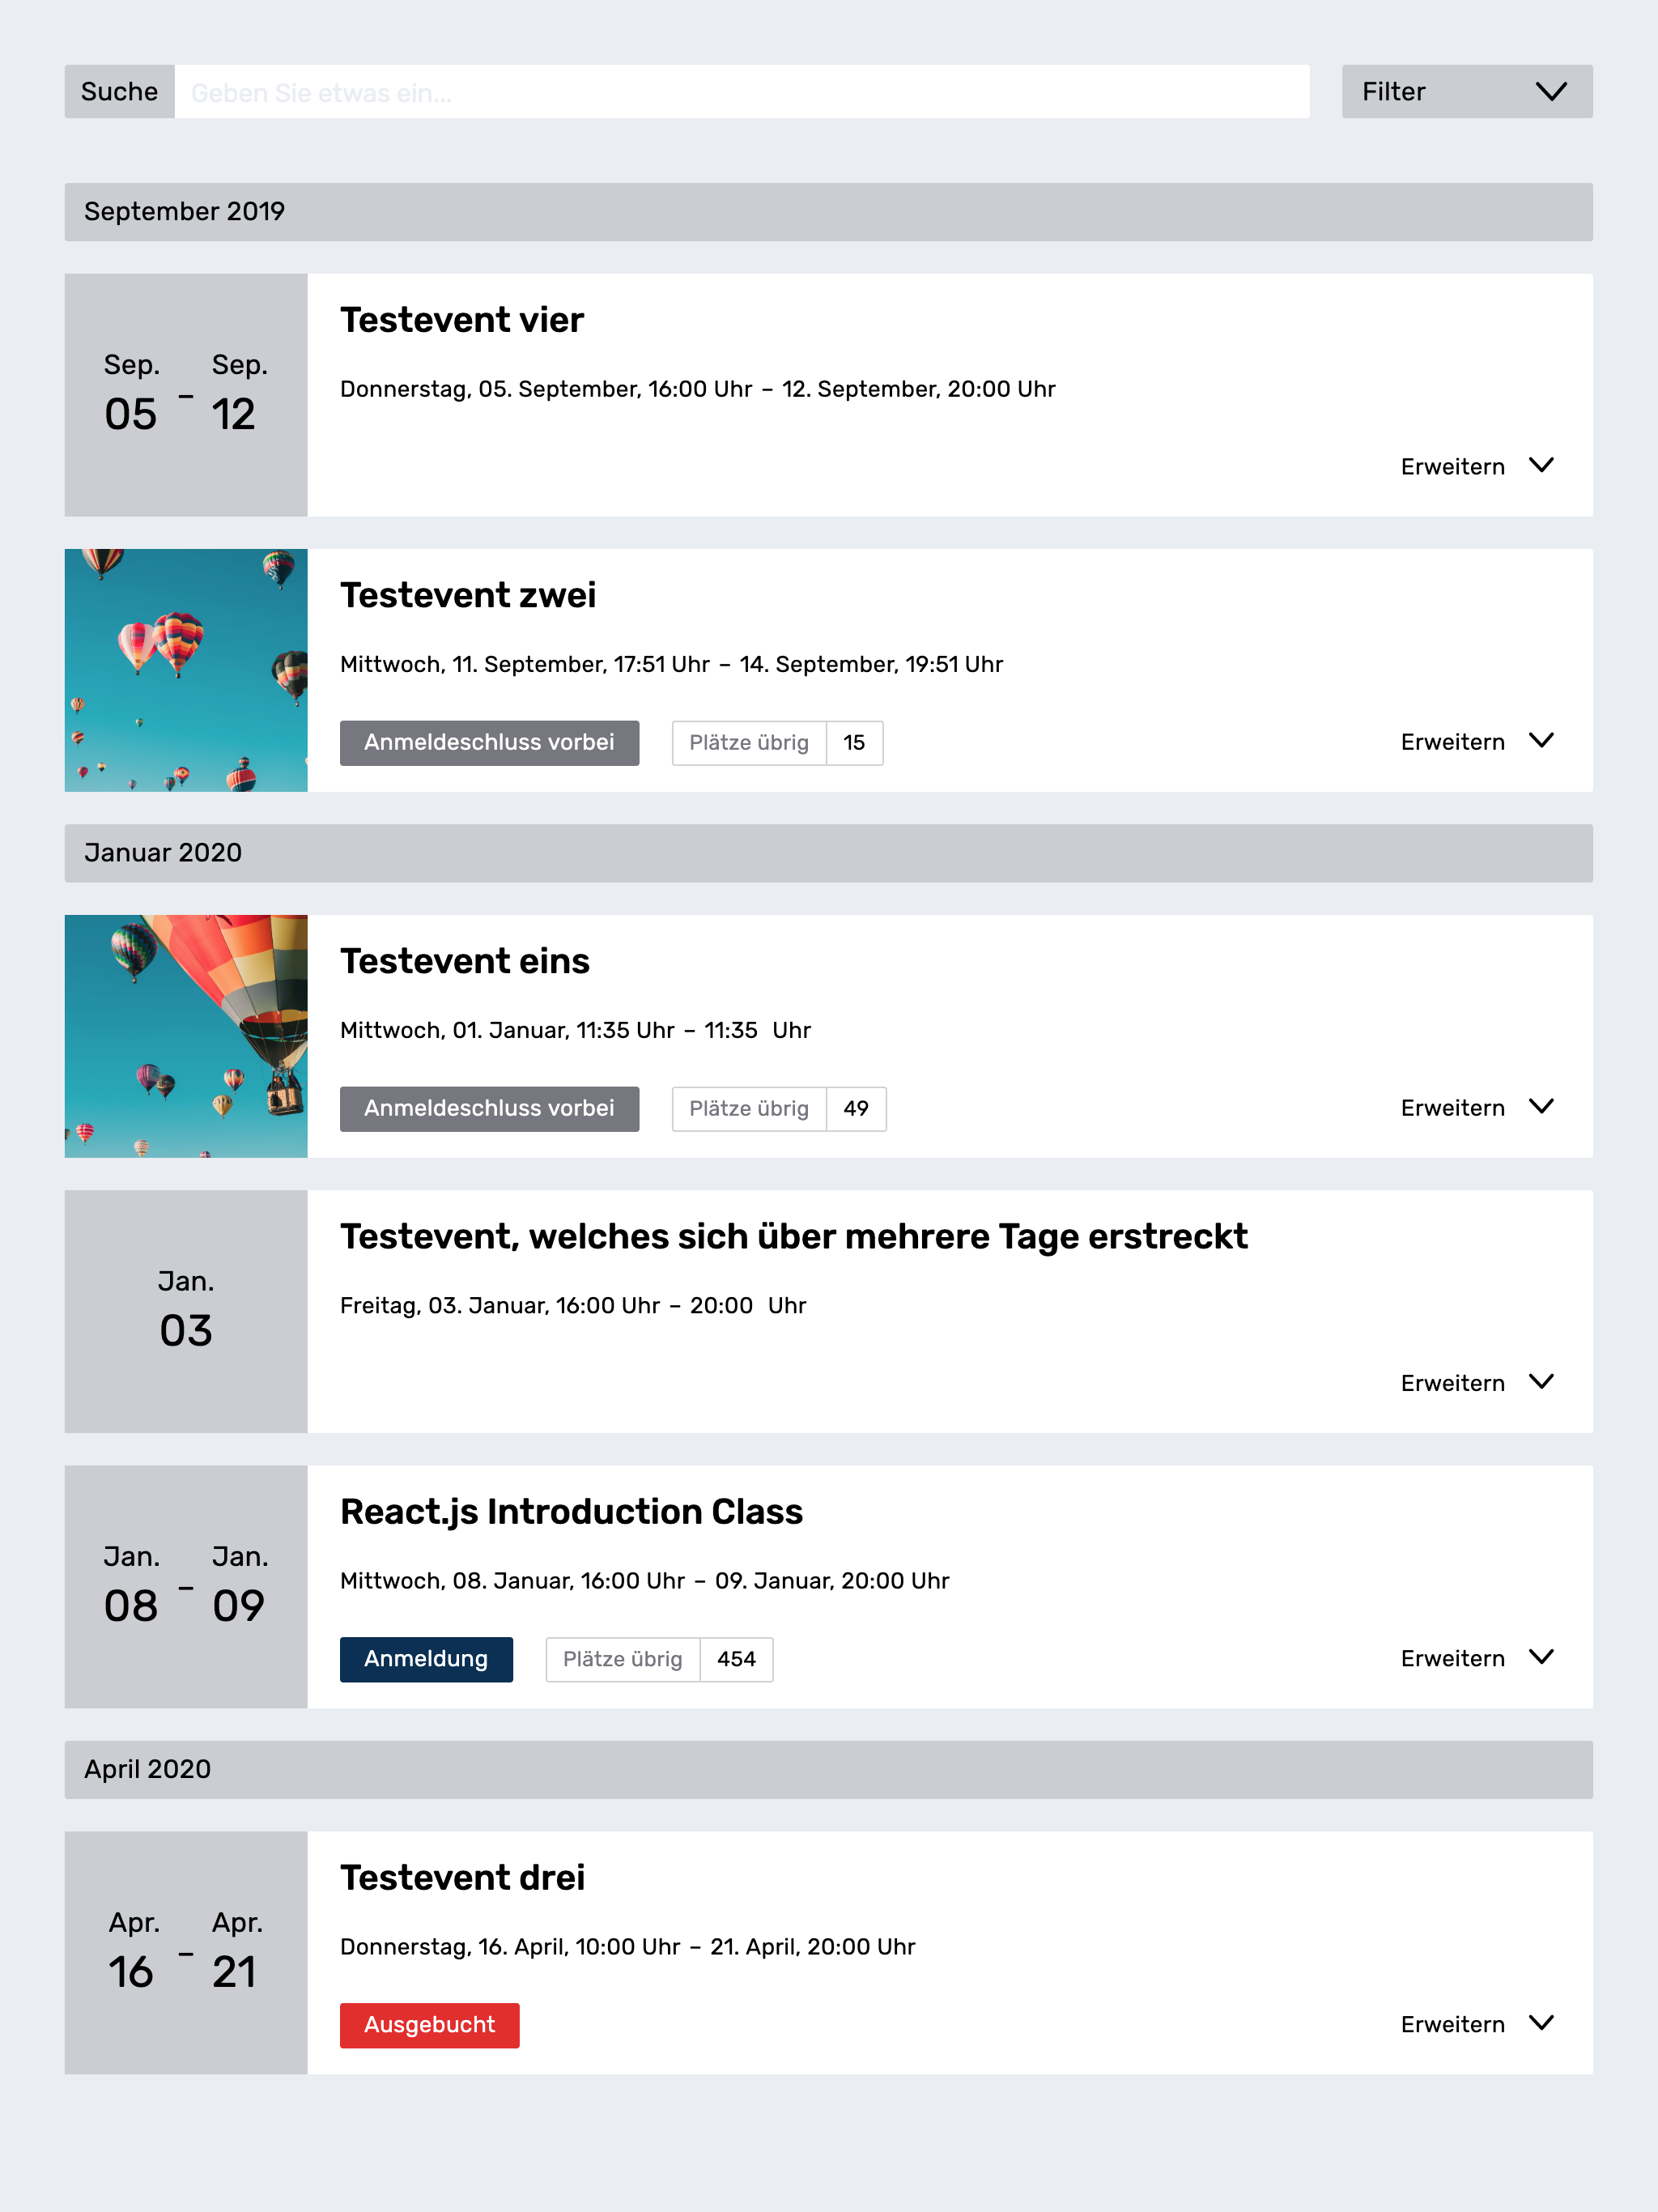 mate-event-overview-example.netlify.com__iPad_Pro_.png